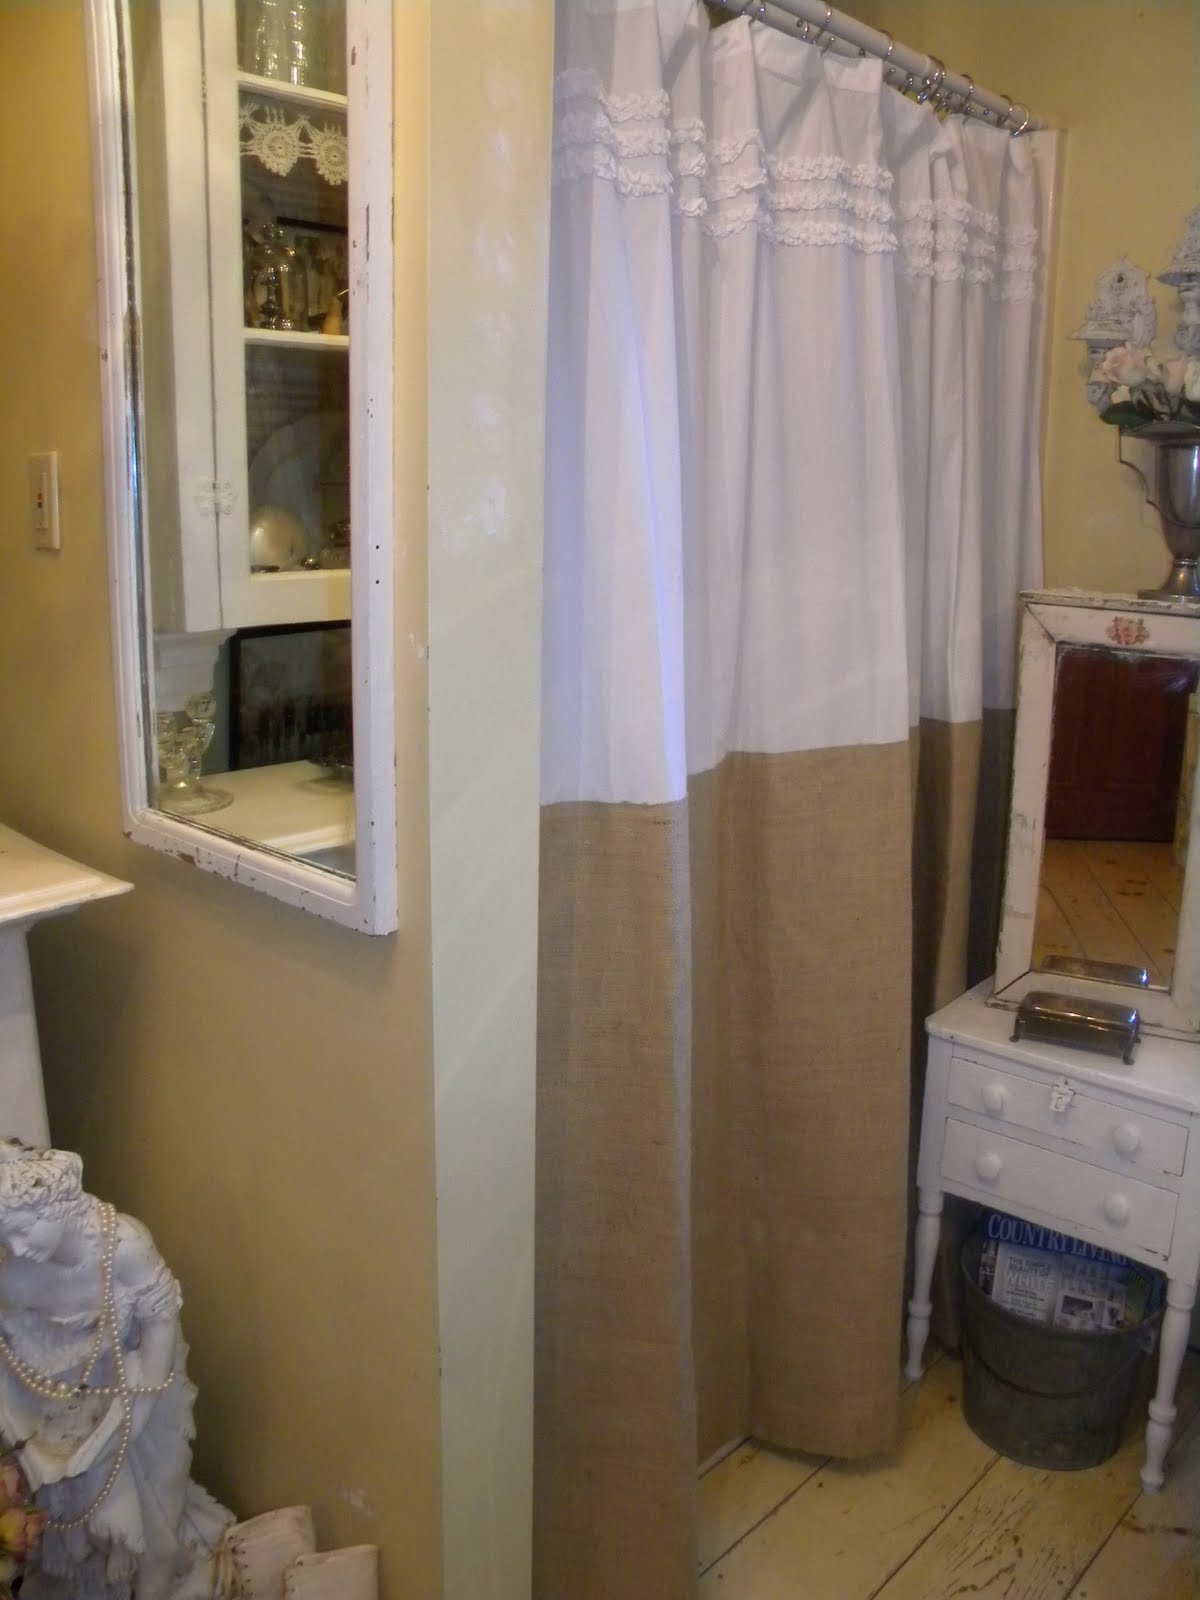 Astounding Design Color Bathroom with burlap shower curtain for make your Bathroom Interior more Awesome